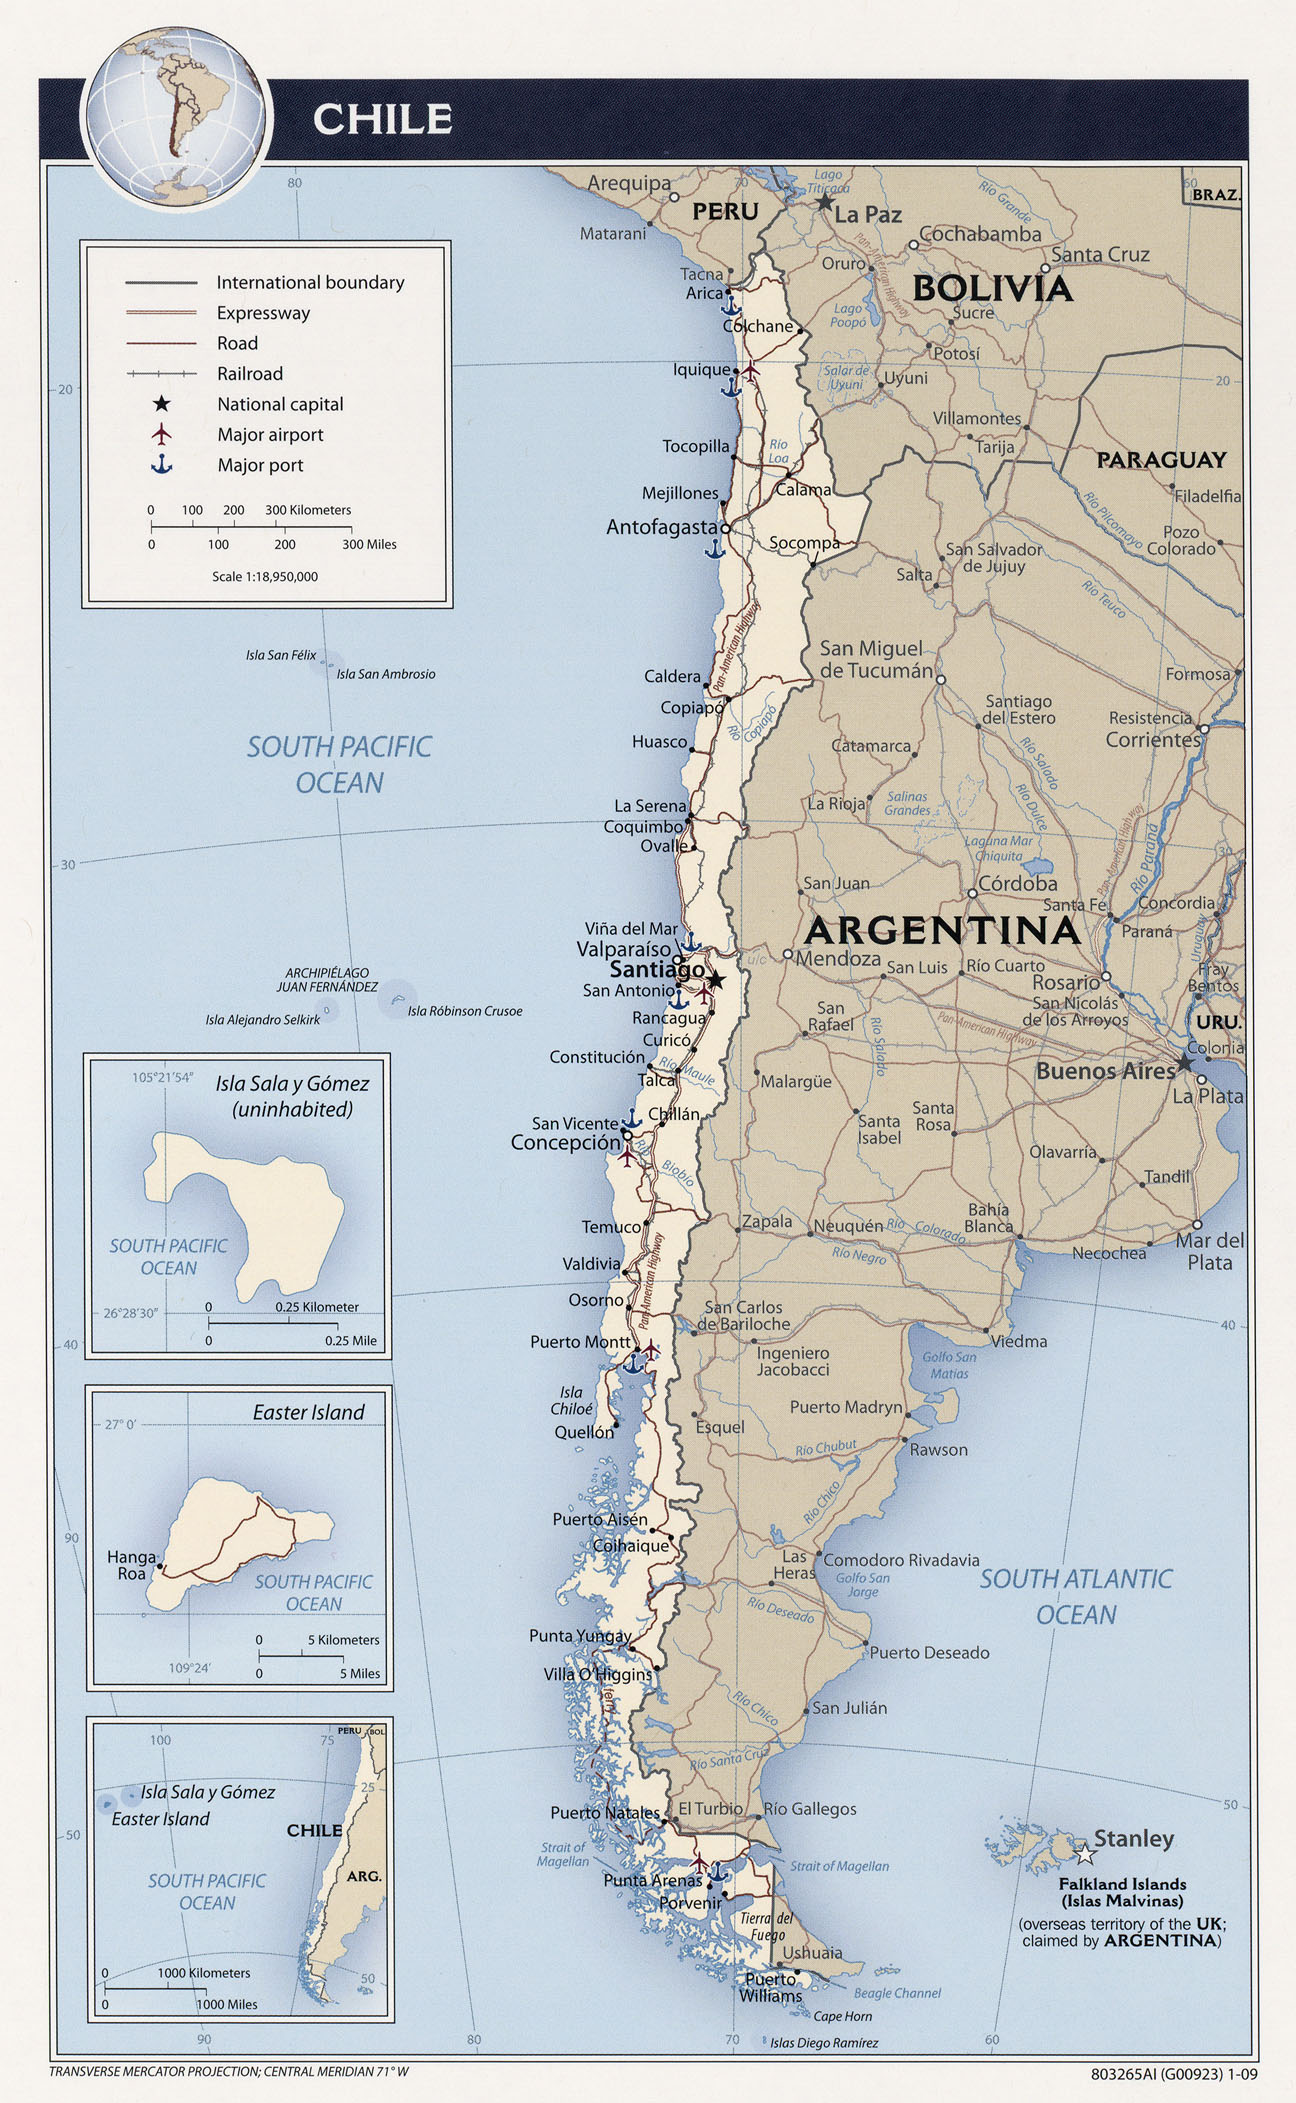 Maps The Cyber Daily - Argentina political map 1996